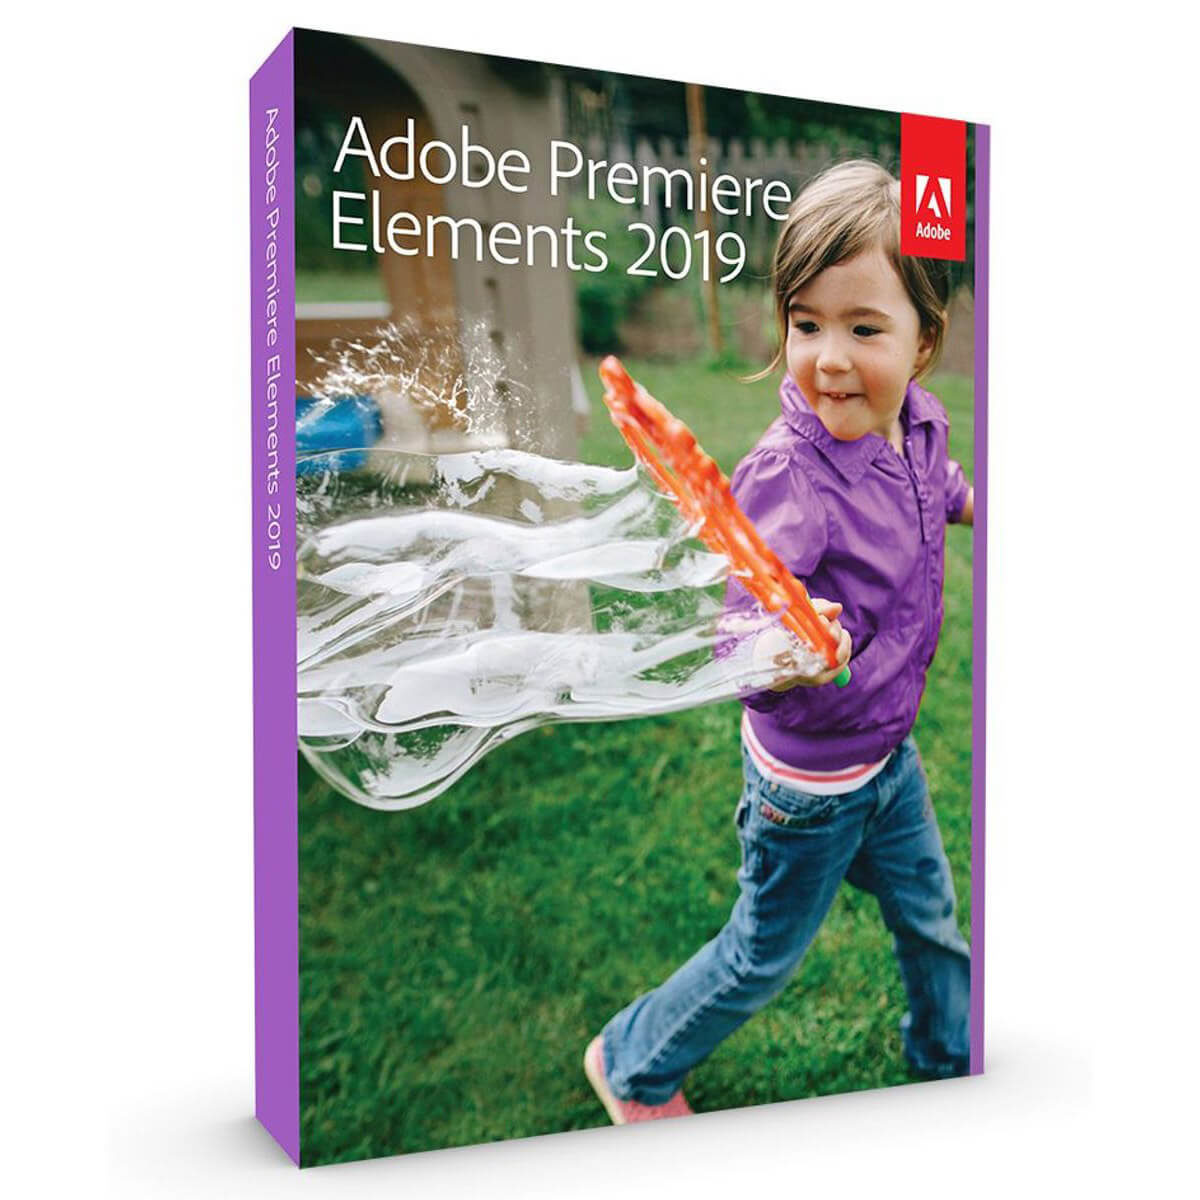 Afbeelding van Adobe Premiere Elements 2019 NL Windows